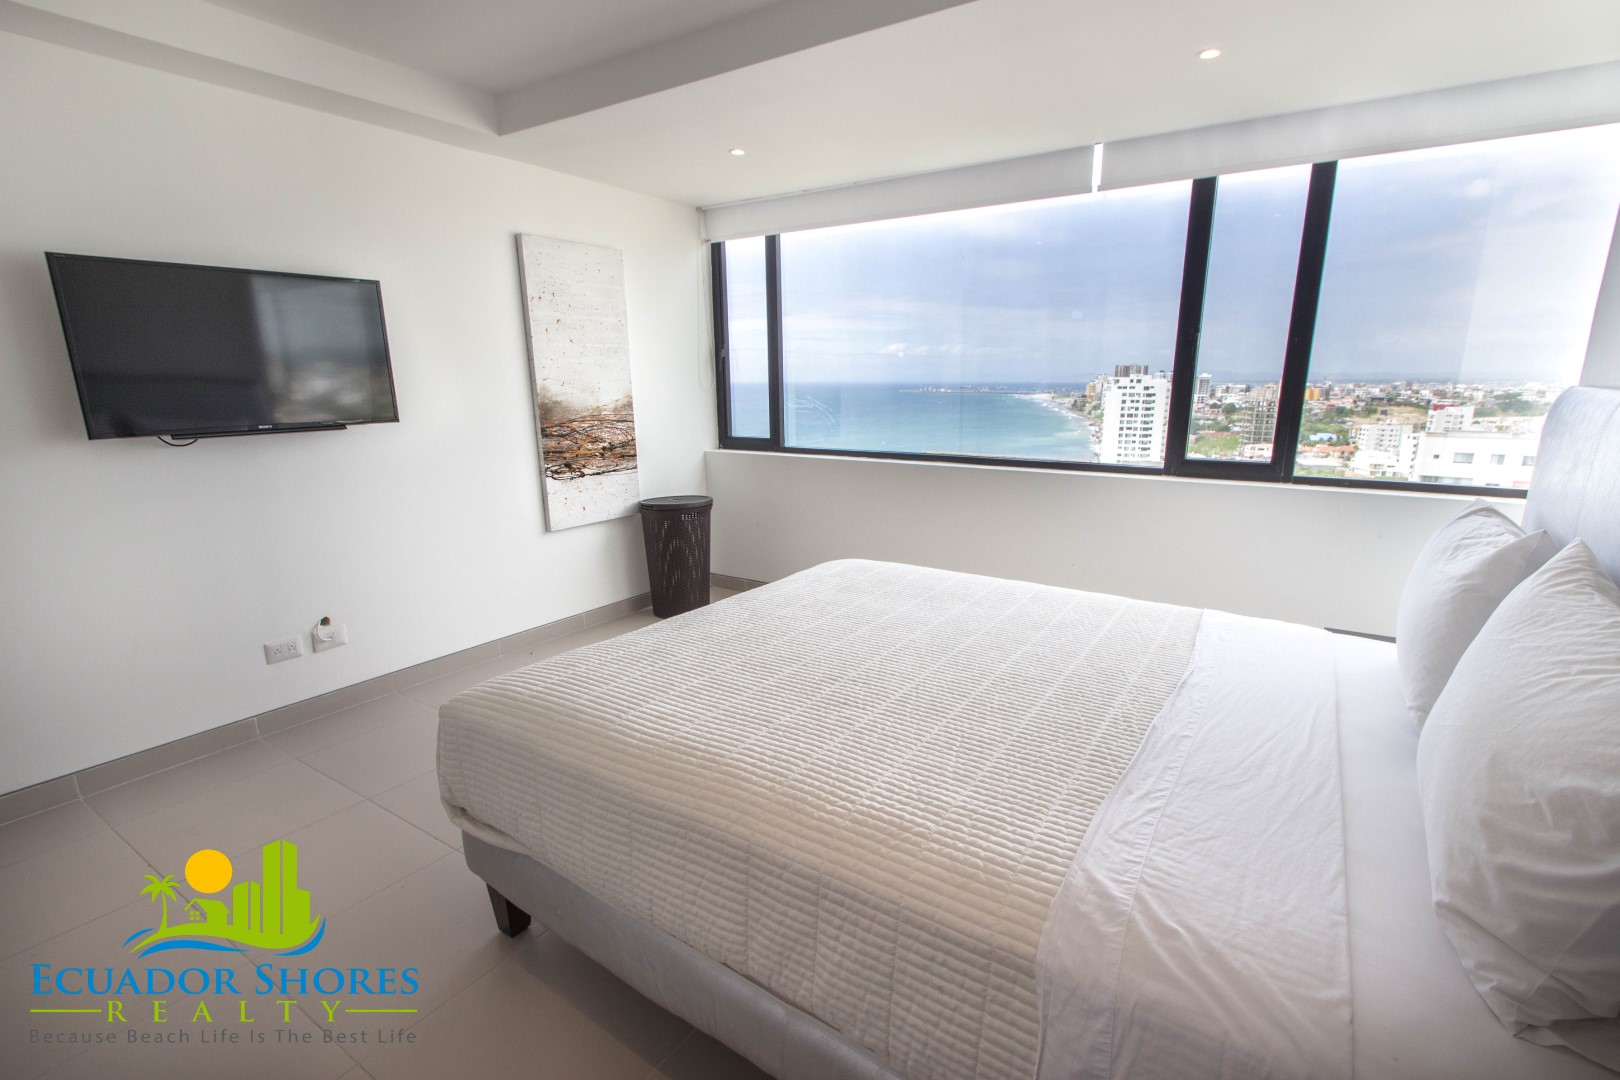 Fully furnished 2-2 with ocean and city views! Manta